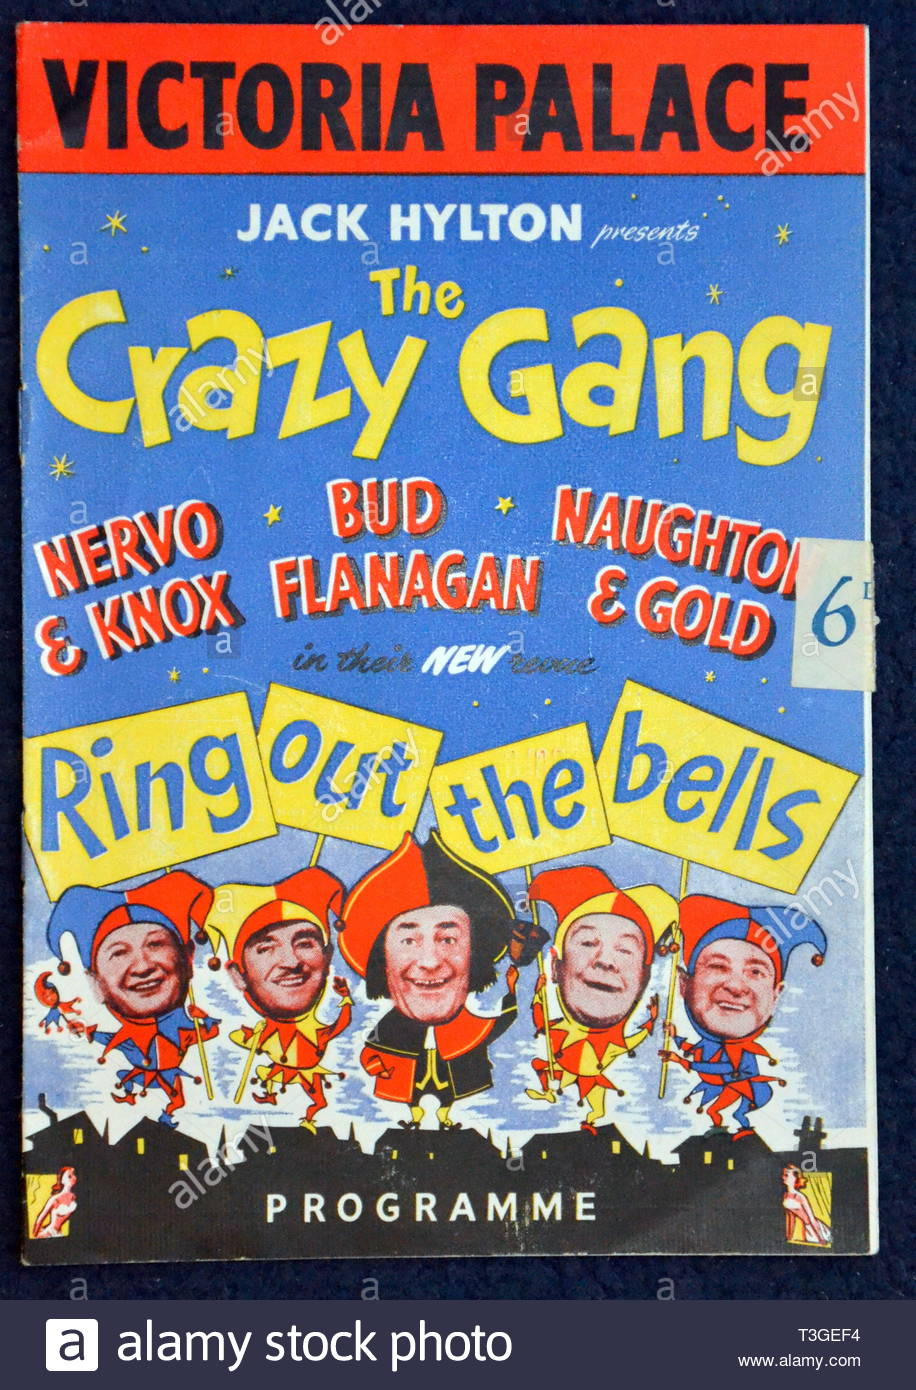 1950's Theatre Programme for The Crazy Gang Show at Victoria Palace Theatre, London,uk - Stock Image